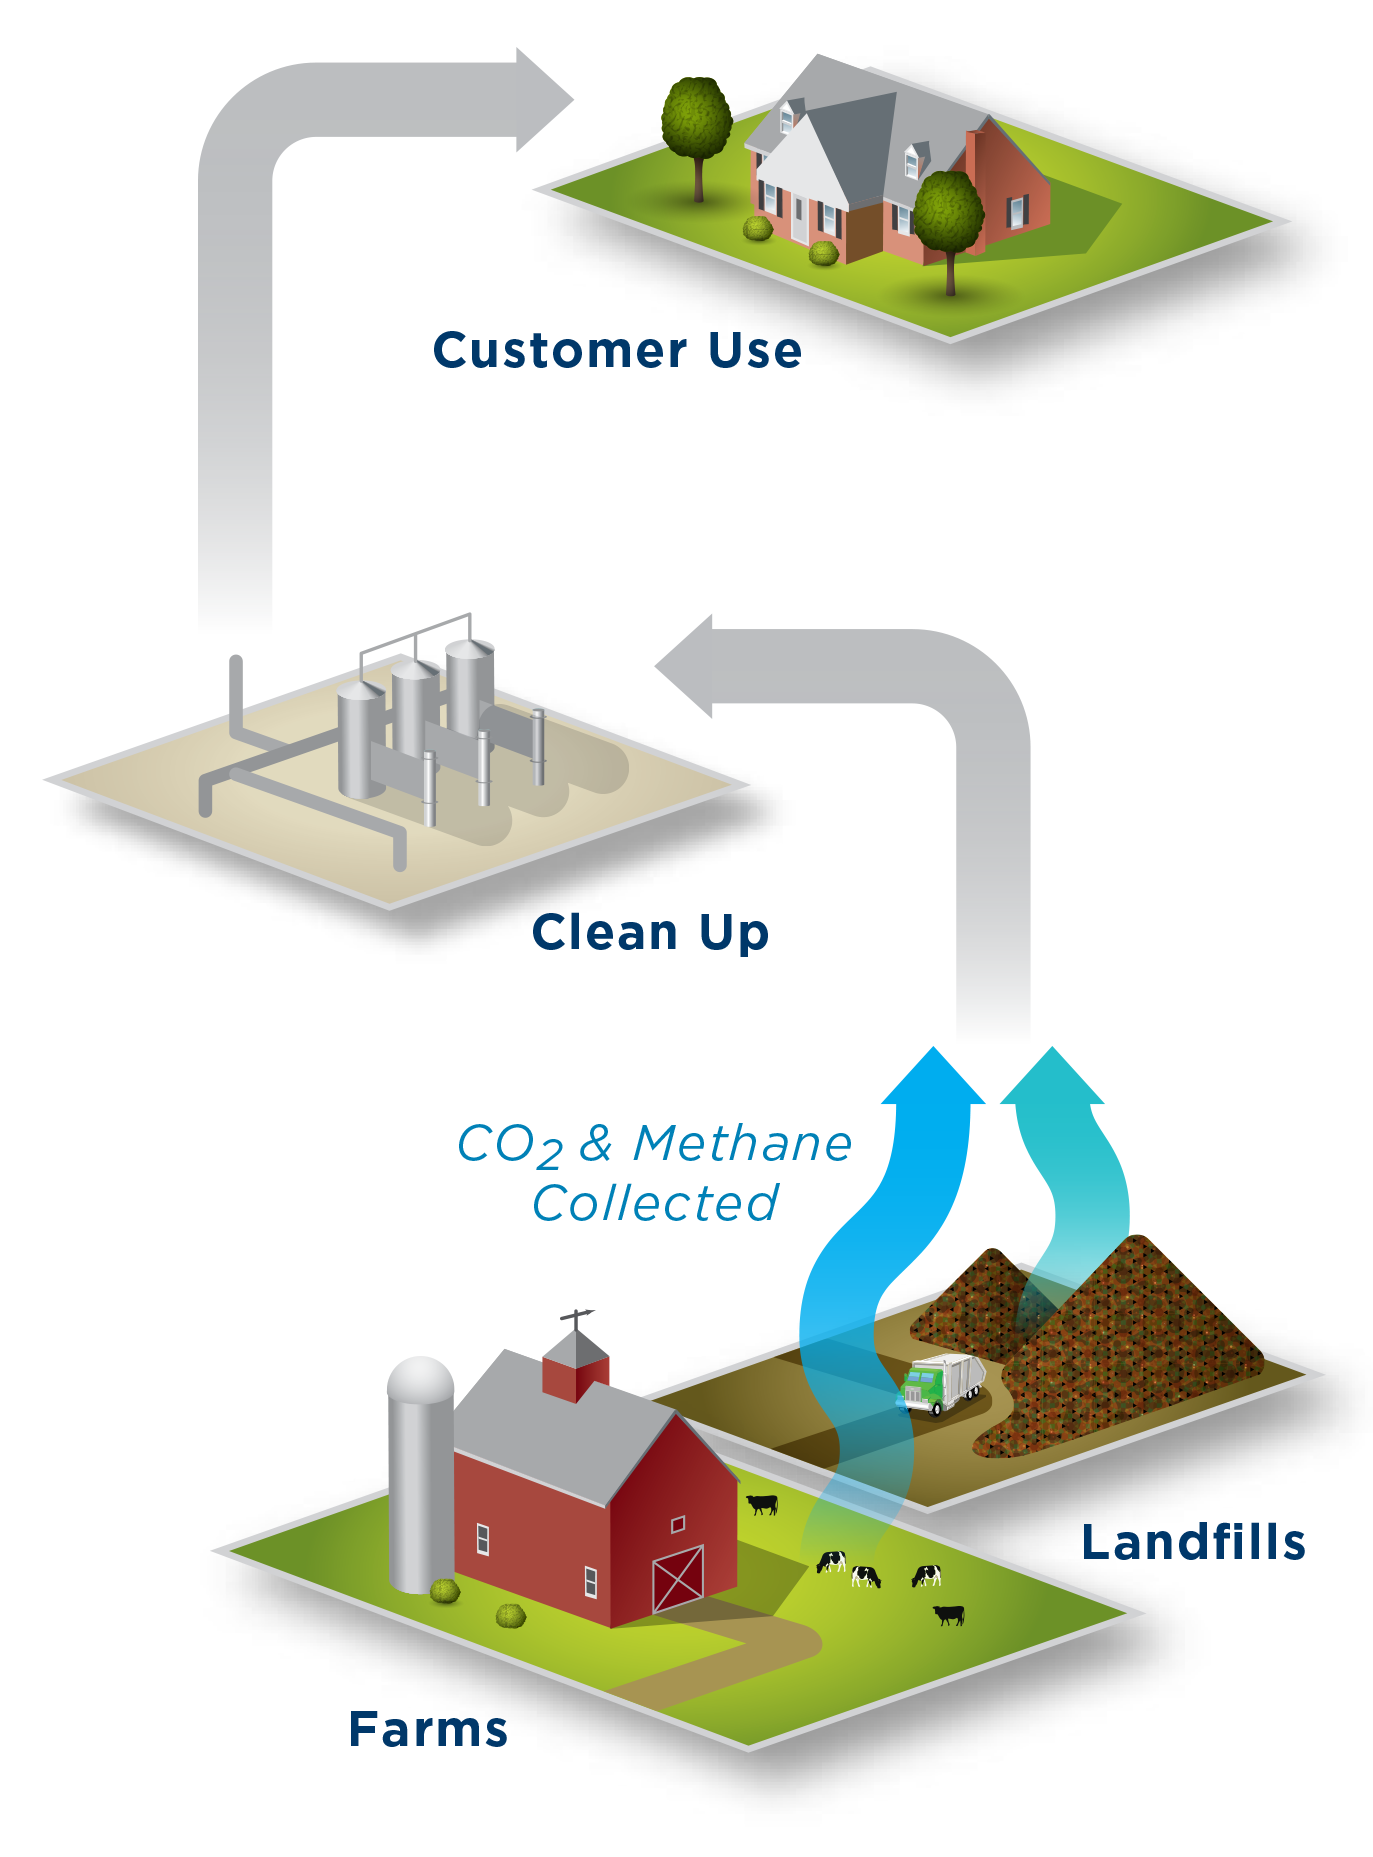 Carbon dioxide and methane are collected from farms and landfills, cleaned up, and then made available for customer use as natural gas